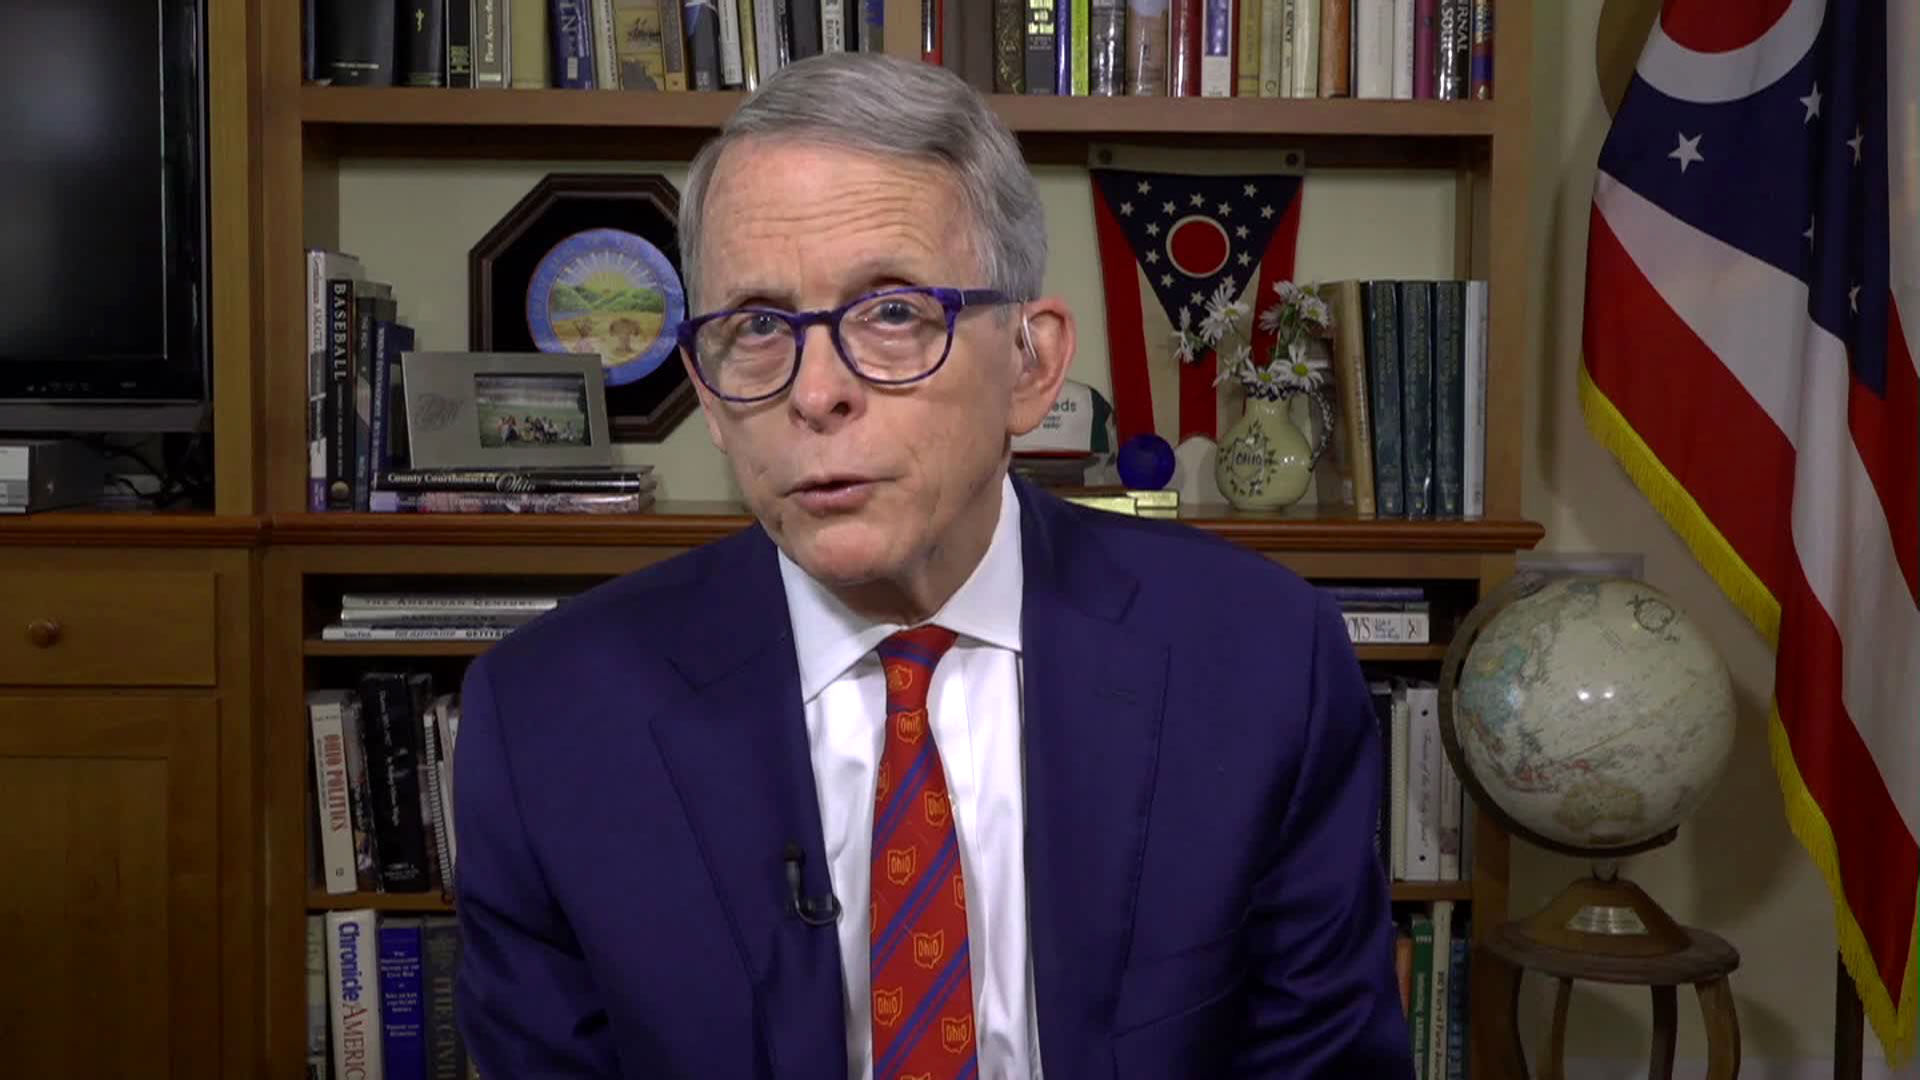 Ohio Gov. Mike DeWine speaks with CNN on Tuesday, November 3.